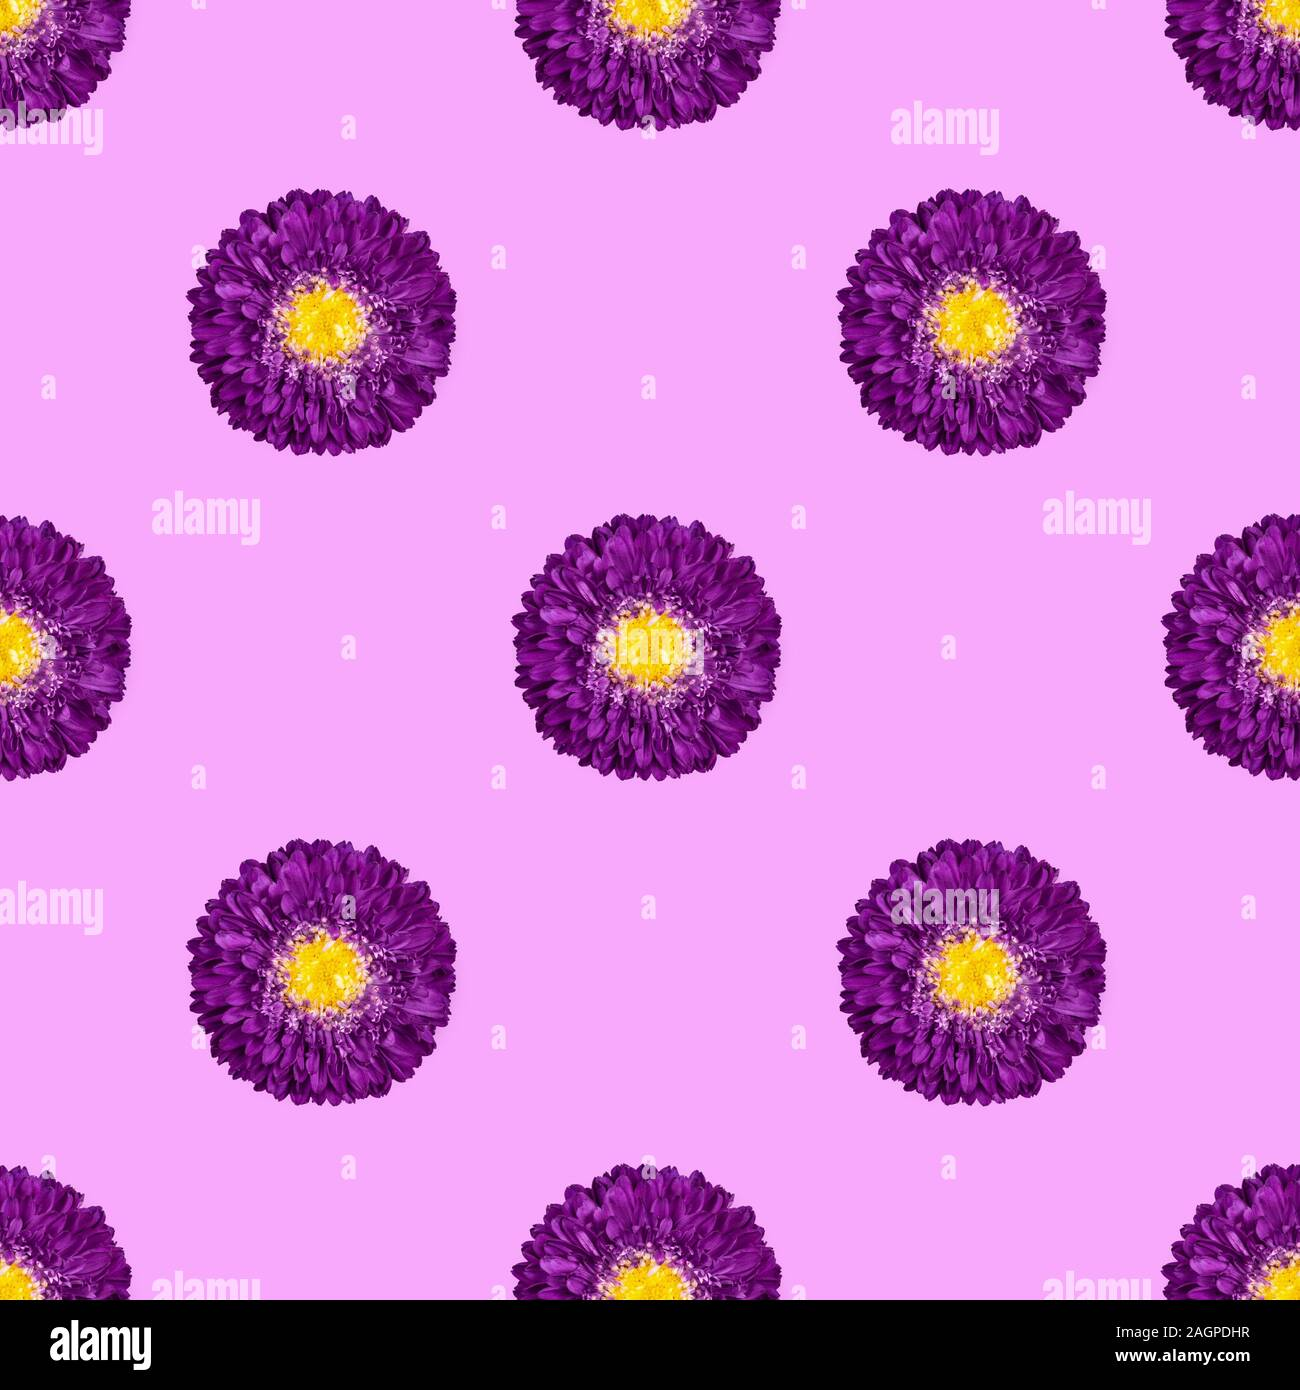 Seamless pattern with purple Aster flowers on pink background. Floral pattern. Tropical abstract background. Stock Photo